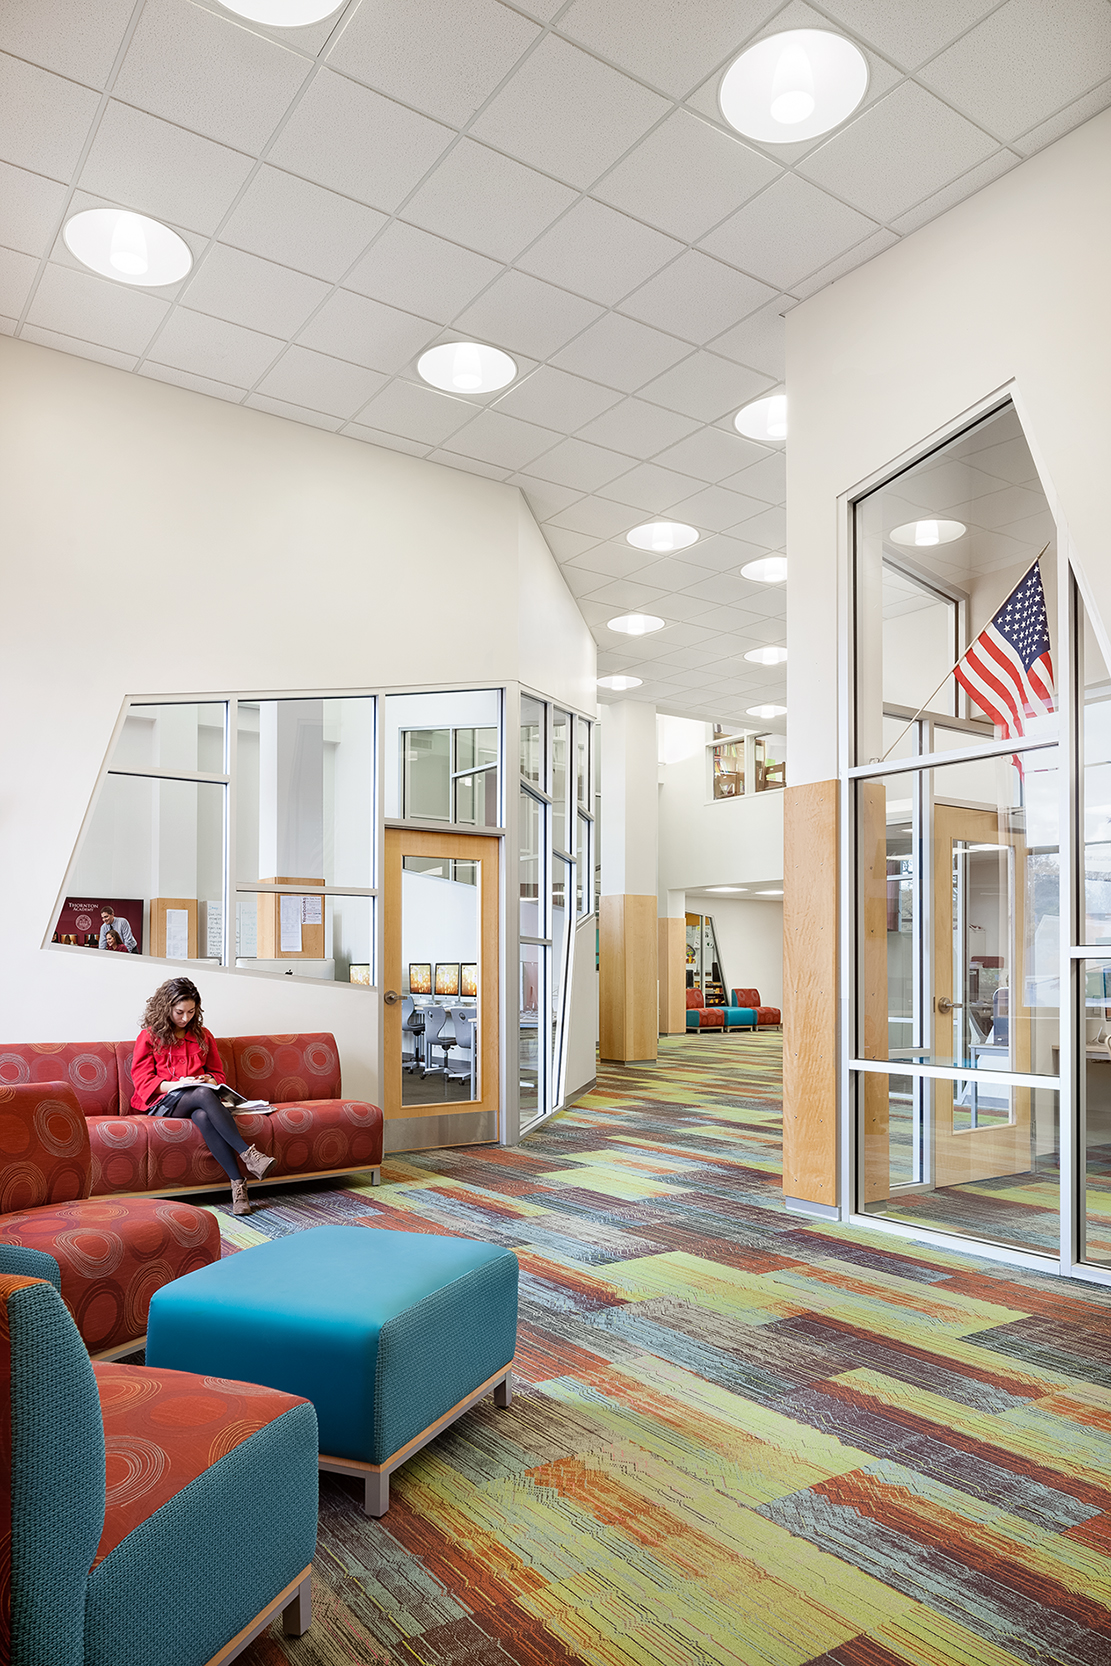 The former school library was renovated for the Arts + New Media Program, with transparent walls and a variety of seating.